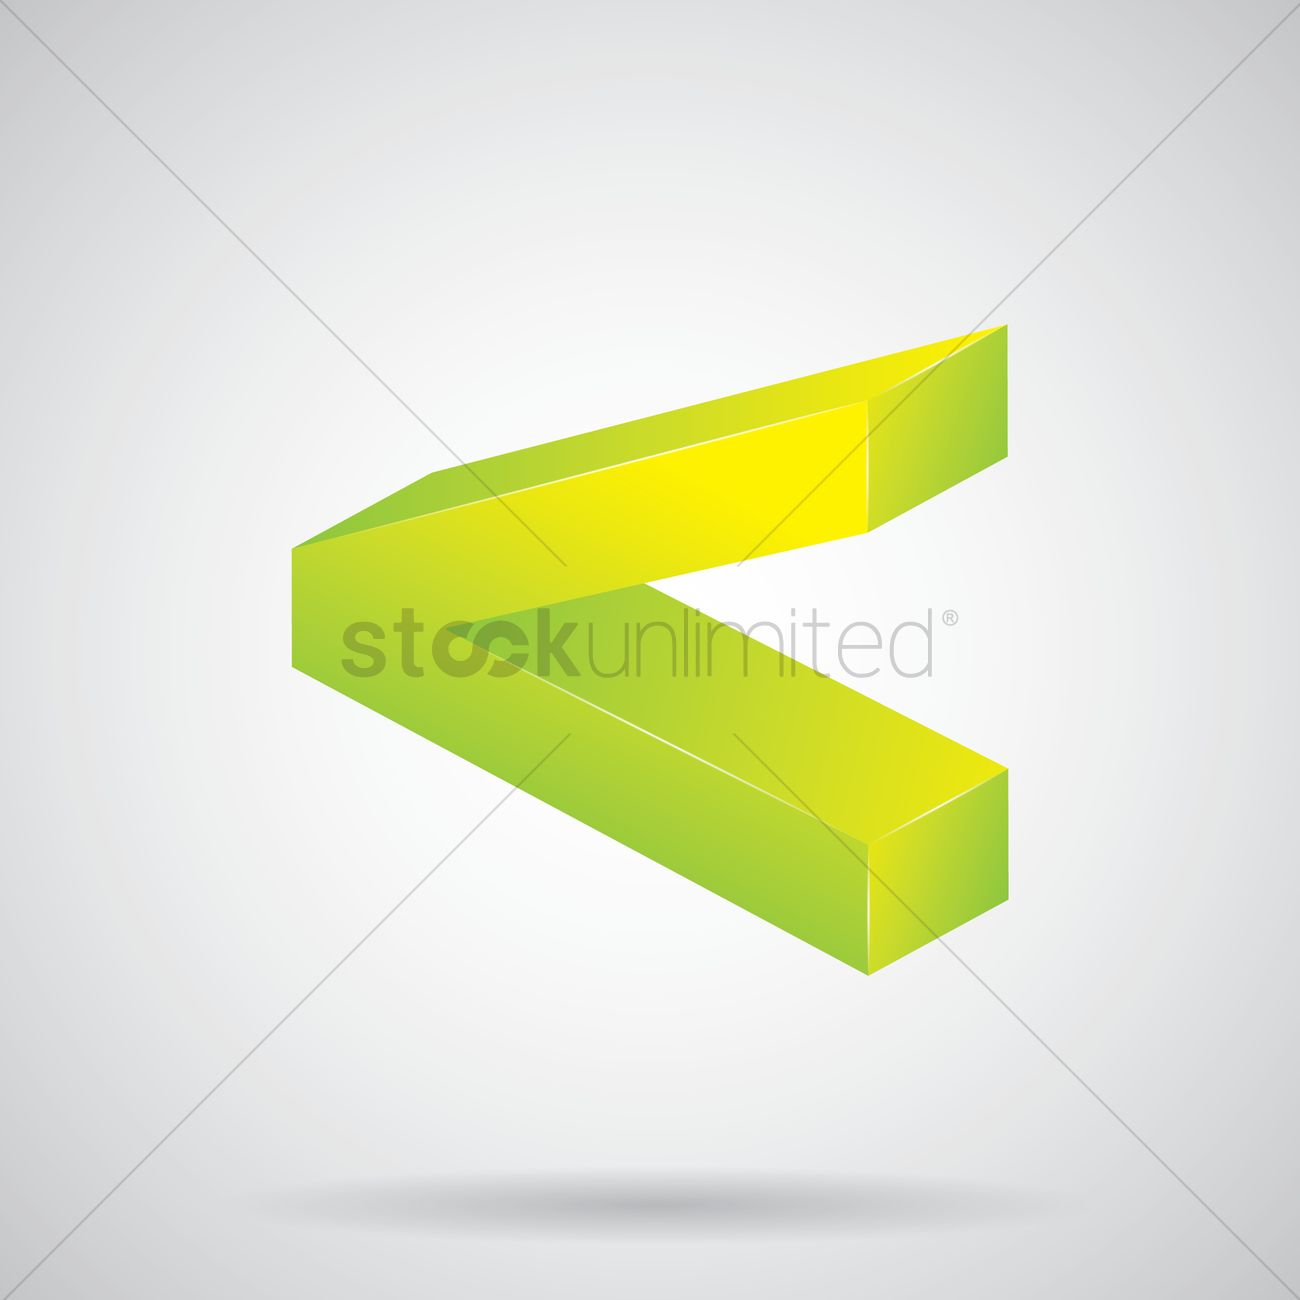 Less than sign vector image 1608948 stockunlimited less than sign vector graphic buycottarizona Choice Image